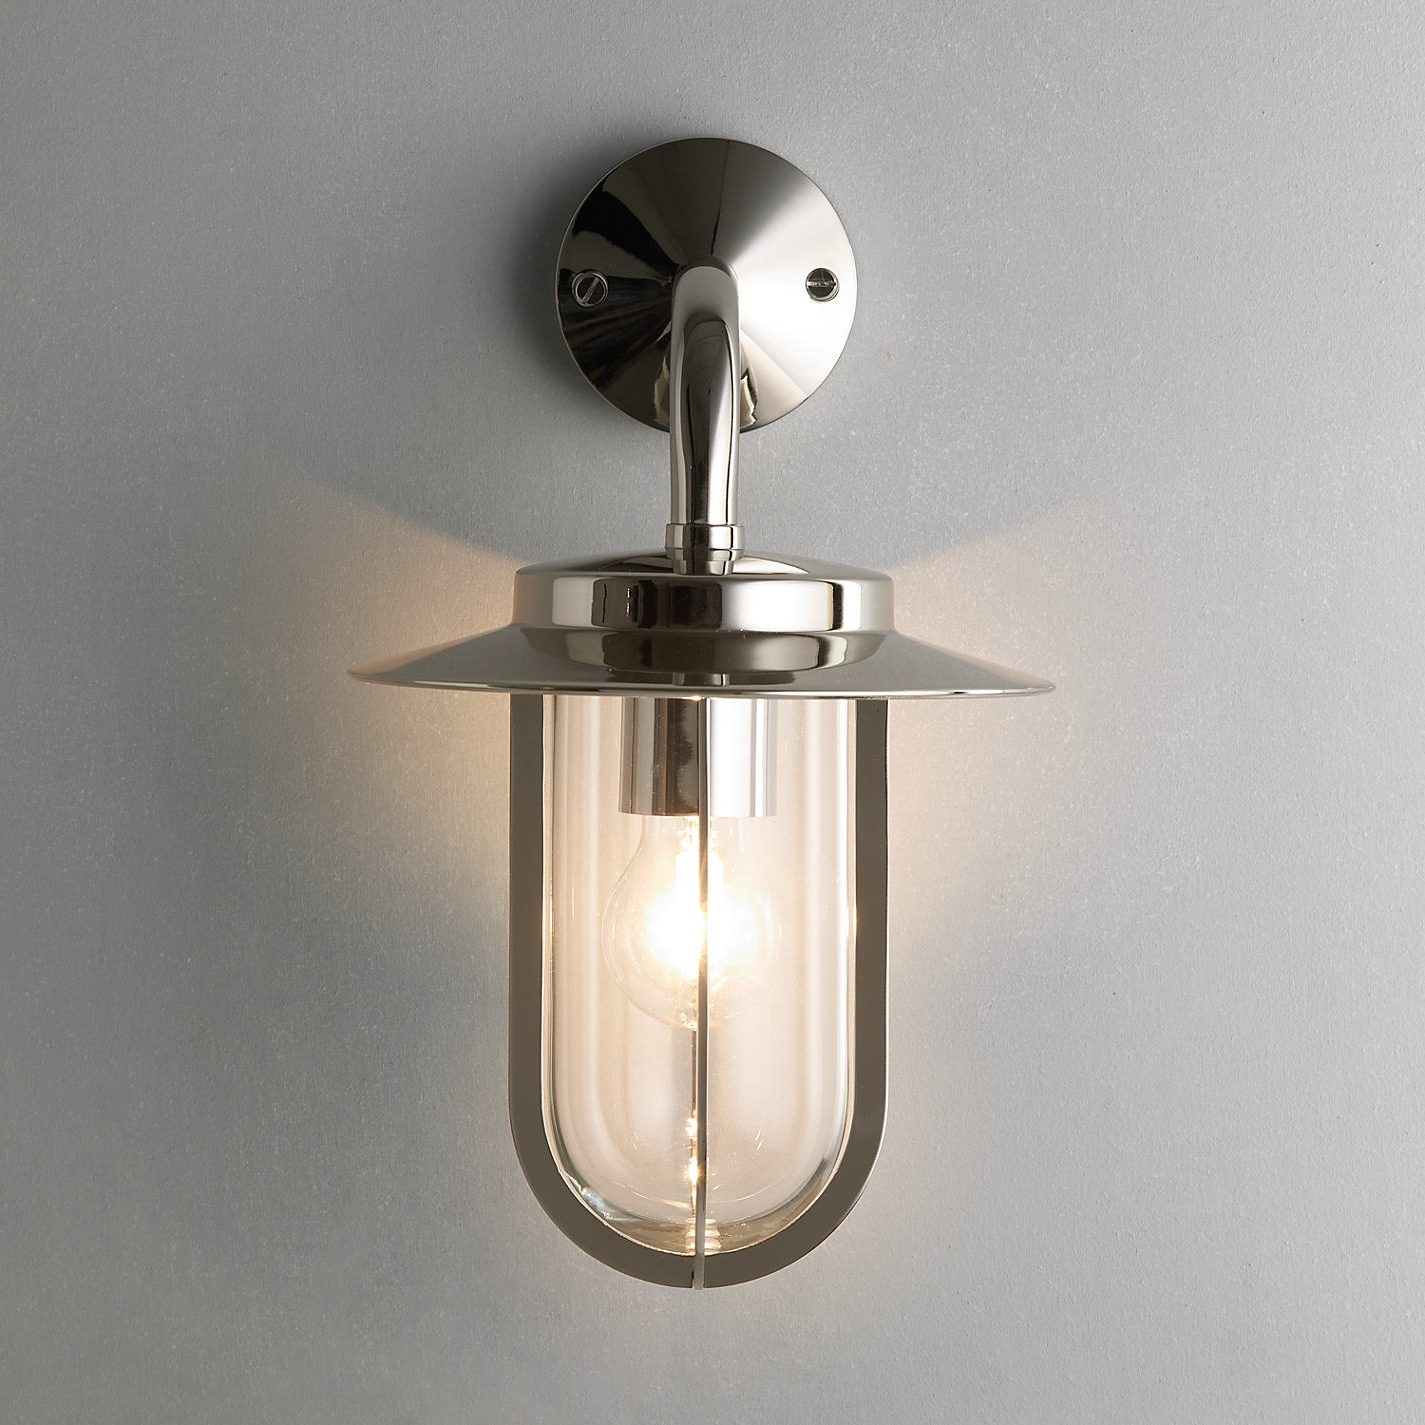 Best And Newest Light : Outdoor Wall Mount Lighting Lights Design Mounted Polished Intended For High Quality Outdoor Wall Lighting (Gallery 14 of 20)